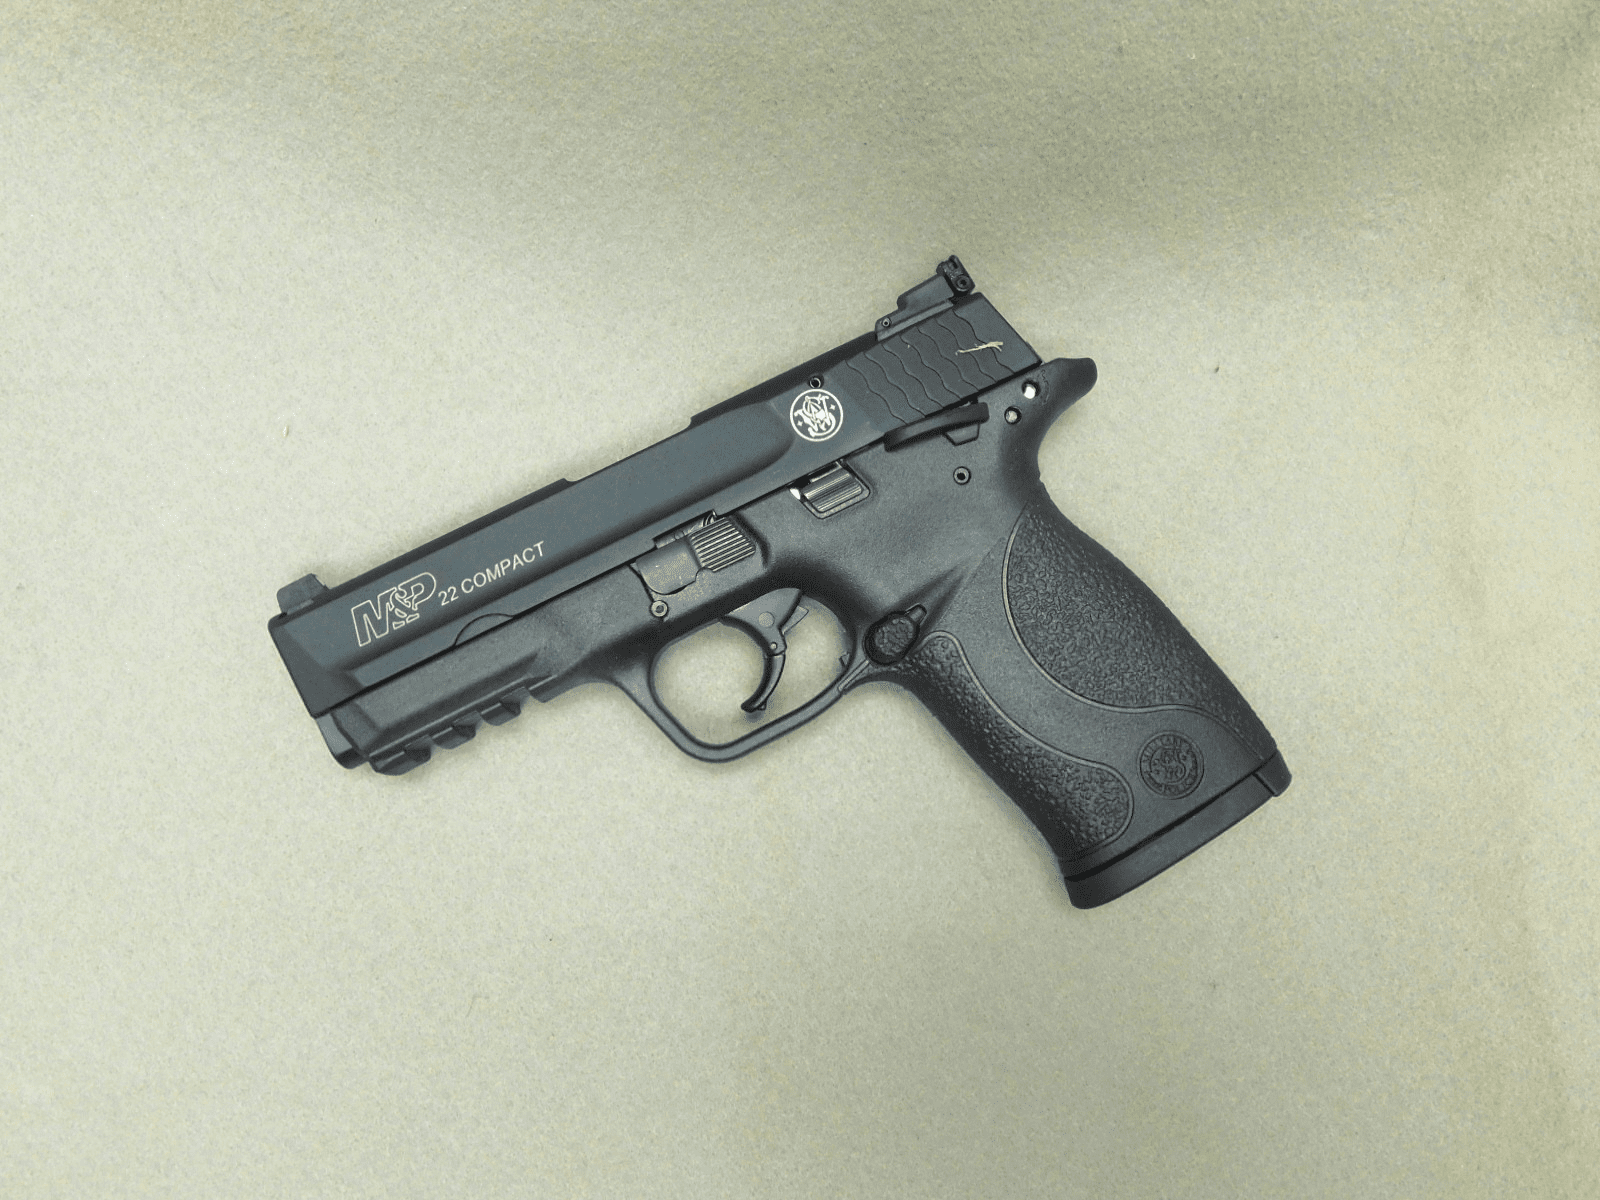 Smith & Wesson M&P 22 Compact (.22lr)